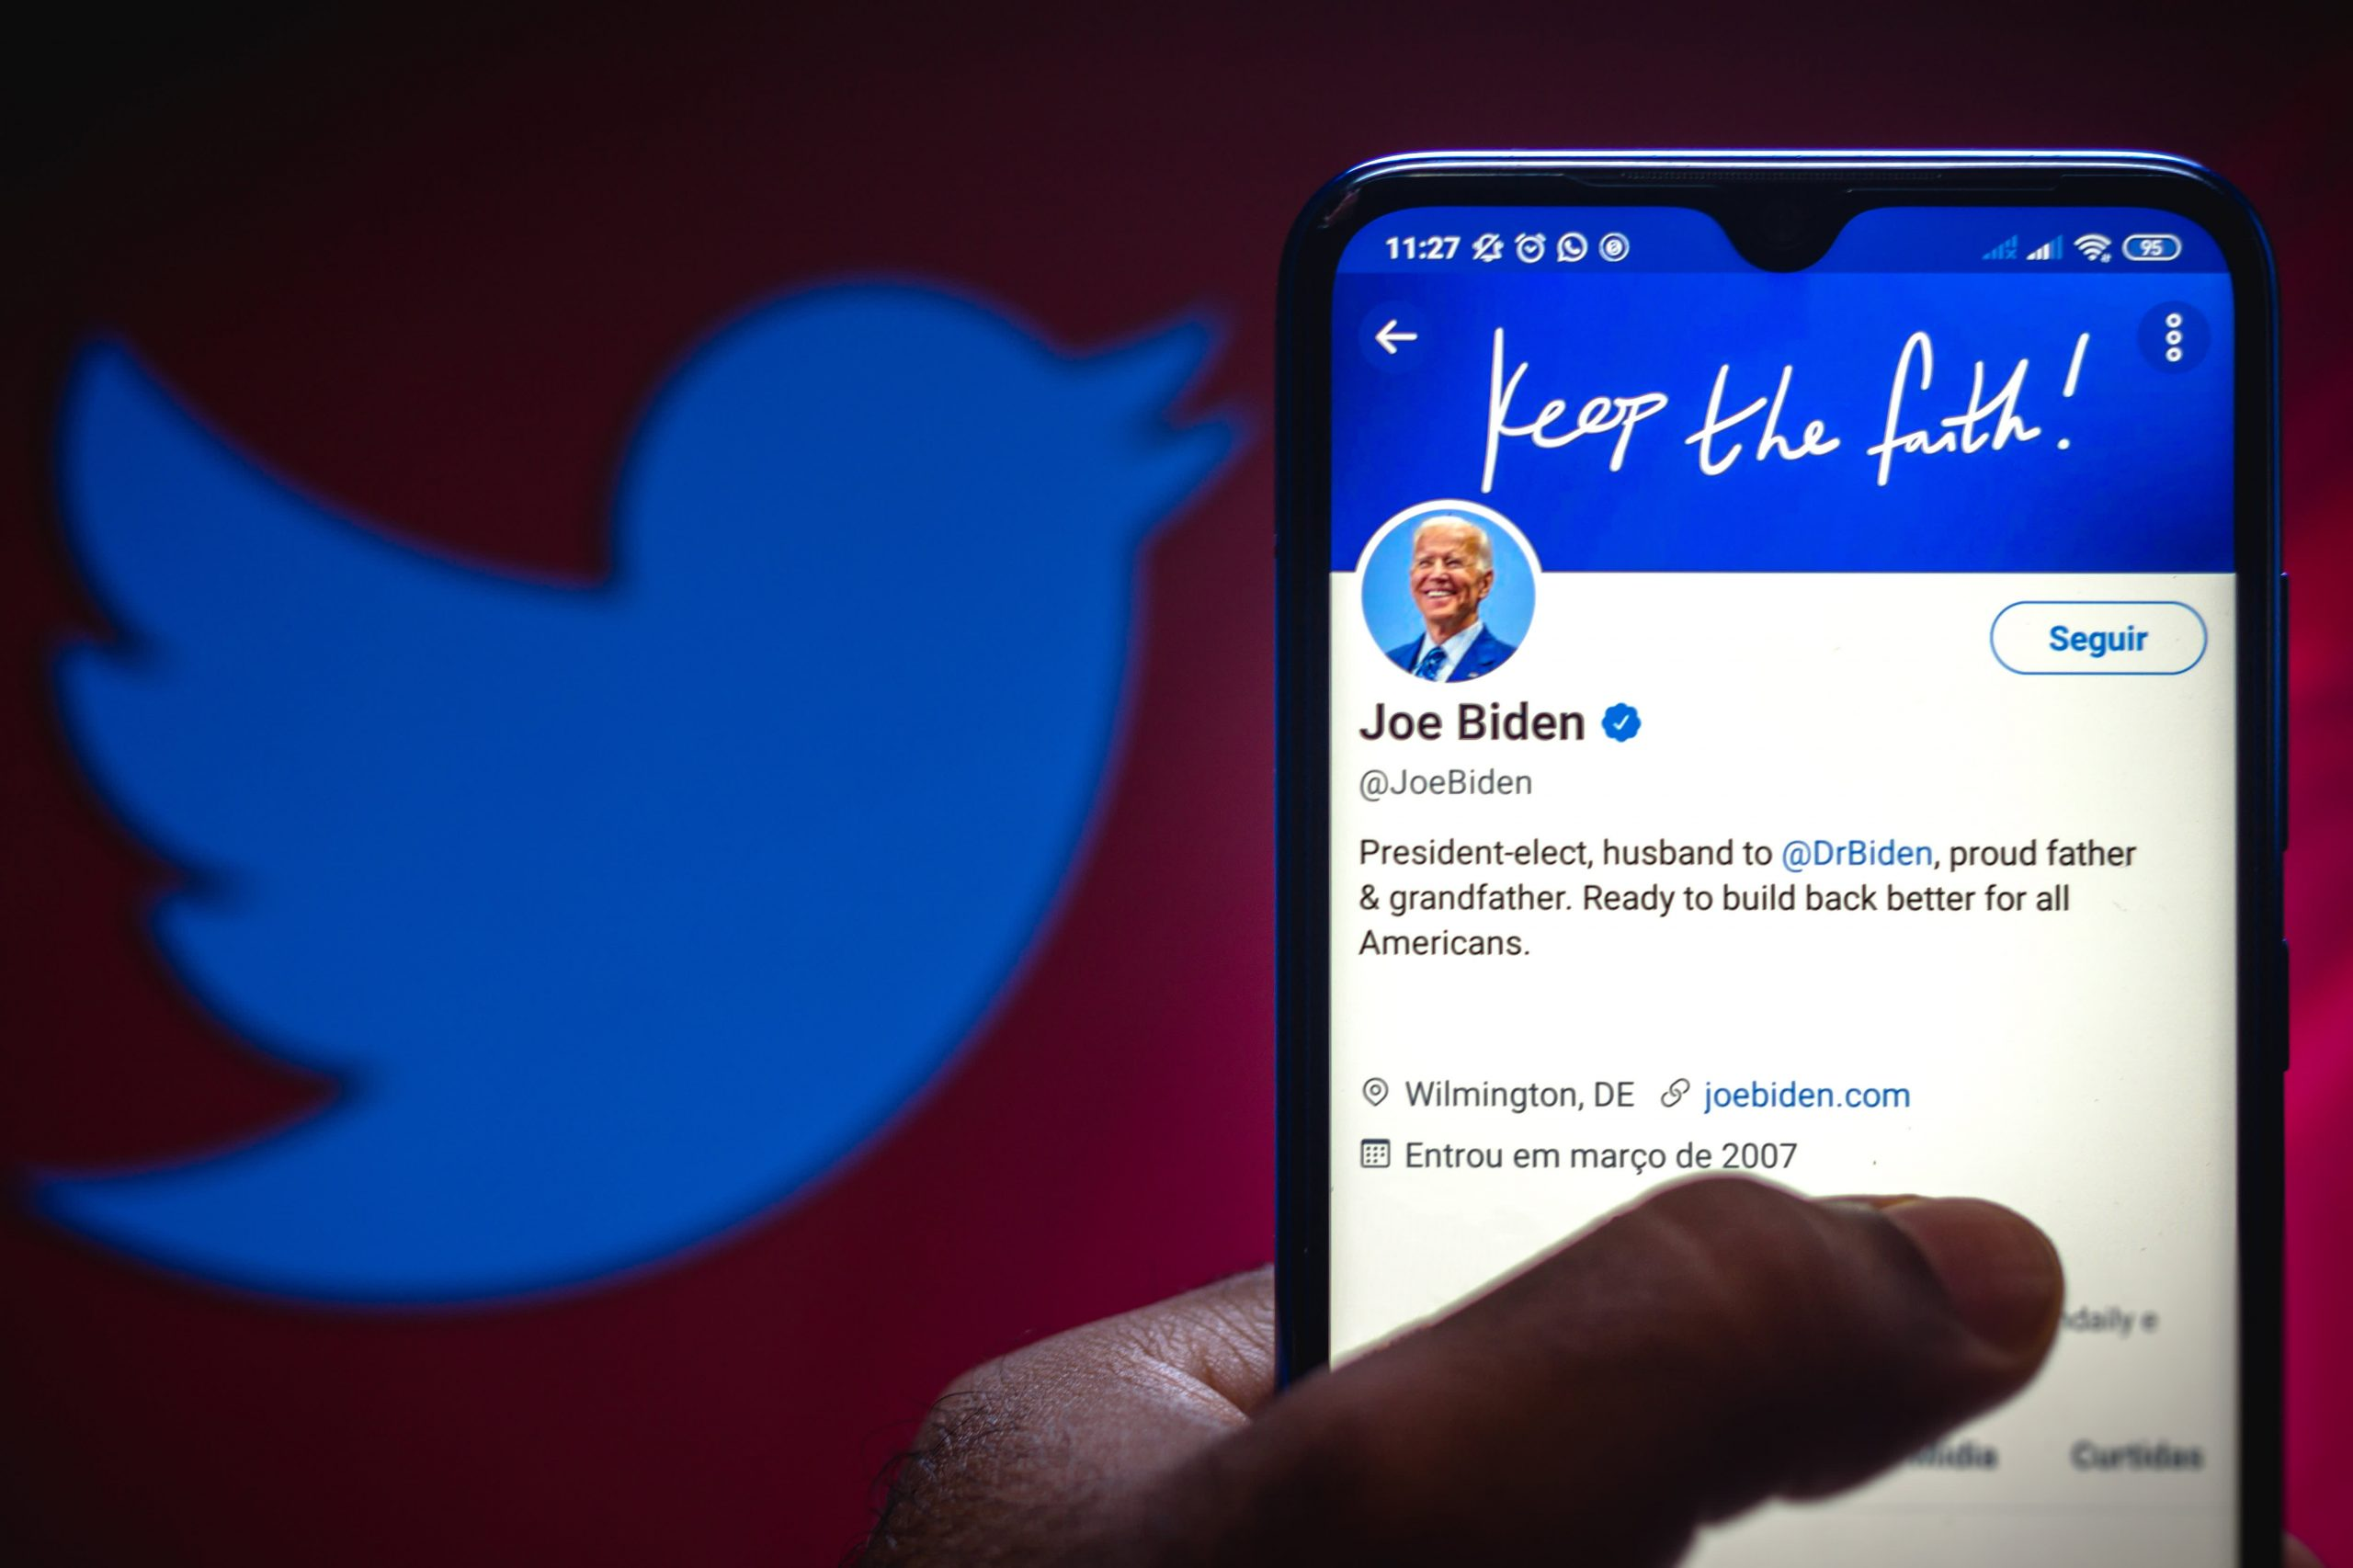 Twitter explains how it will transfer White House and POTUS accounts to Biden next week